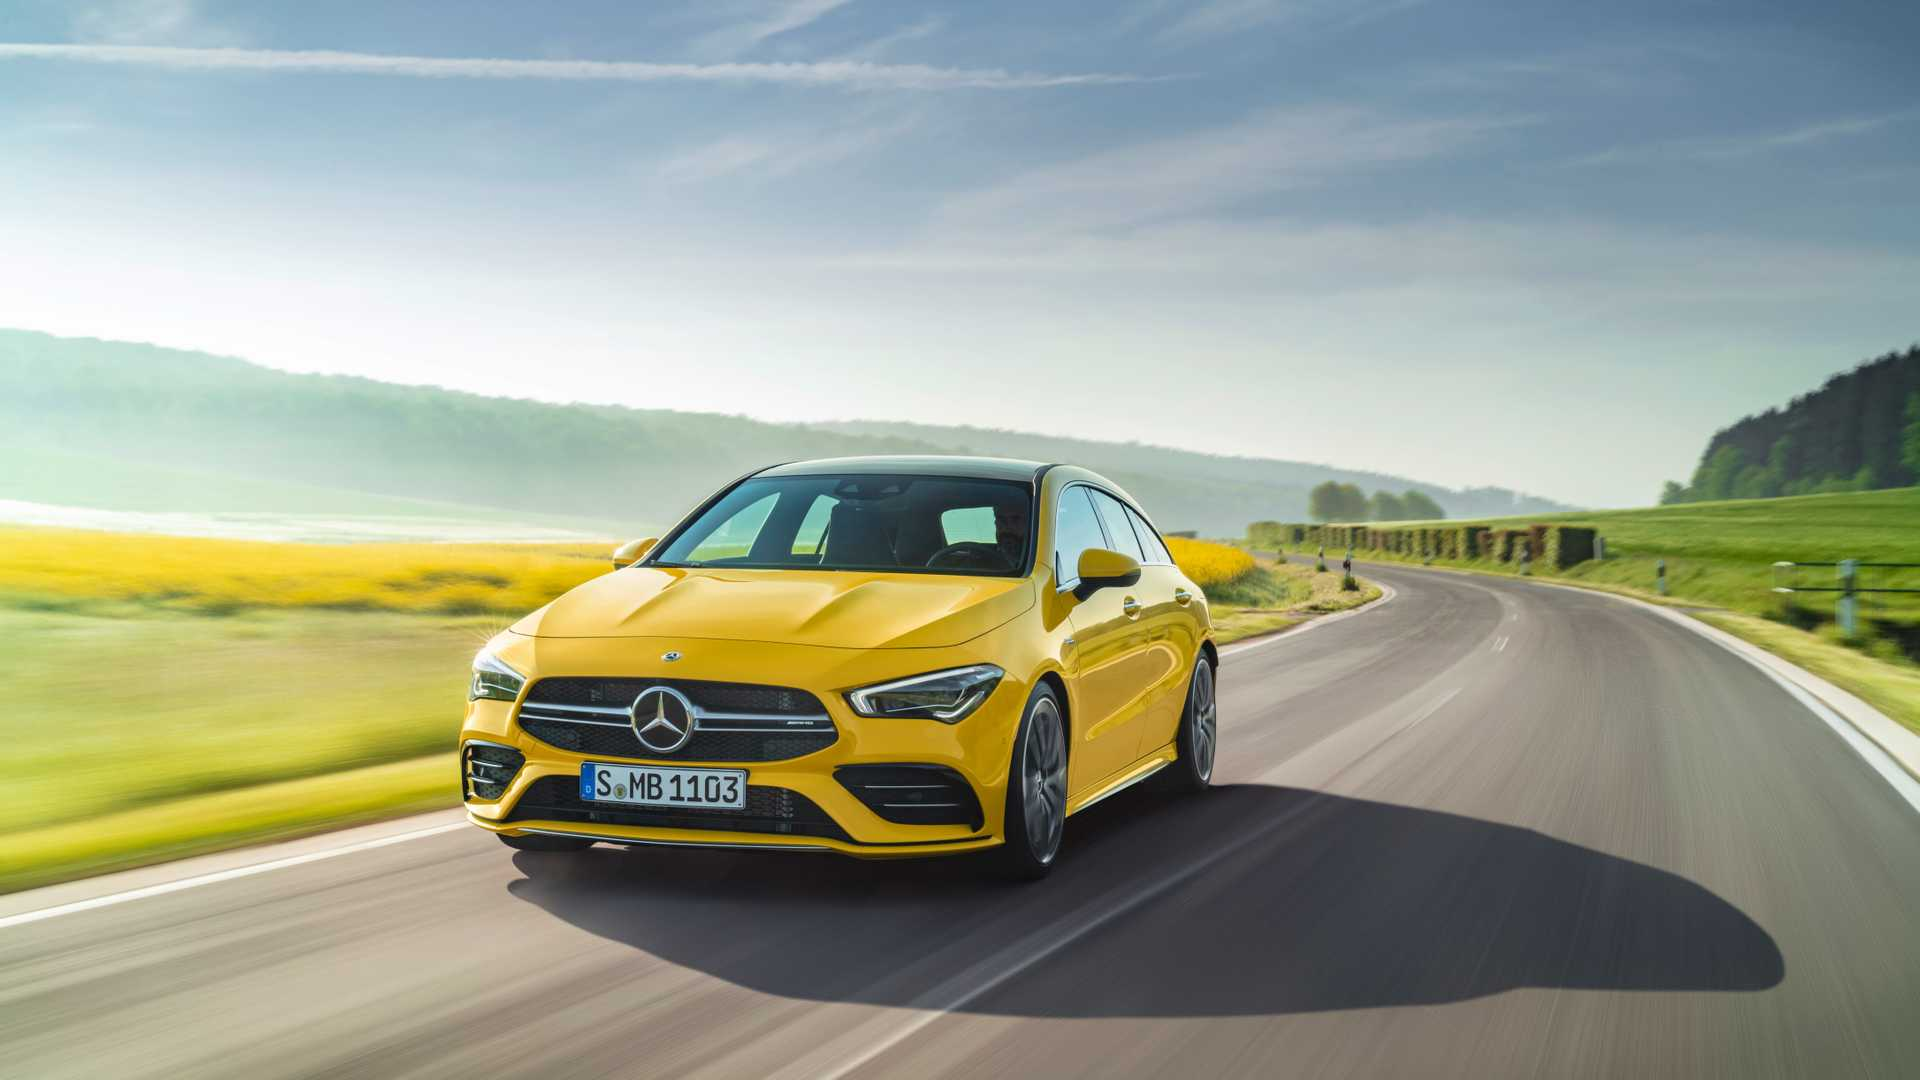 2020 Mercedes-AMG CLA 35 4MATIC Shooting Brake Front Wallpapers (1)